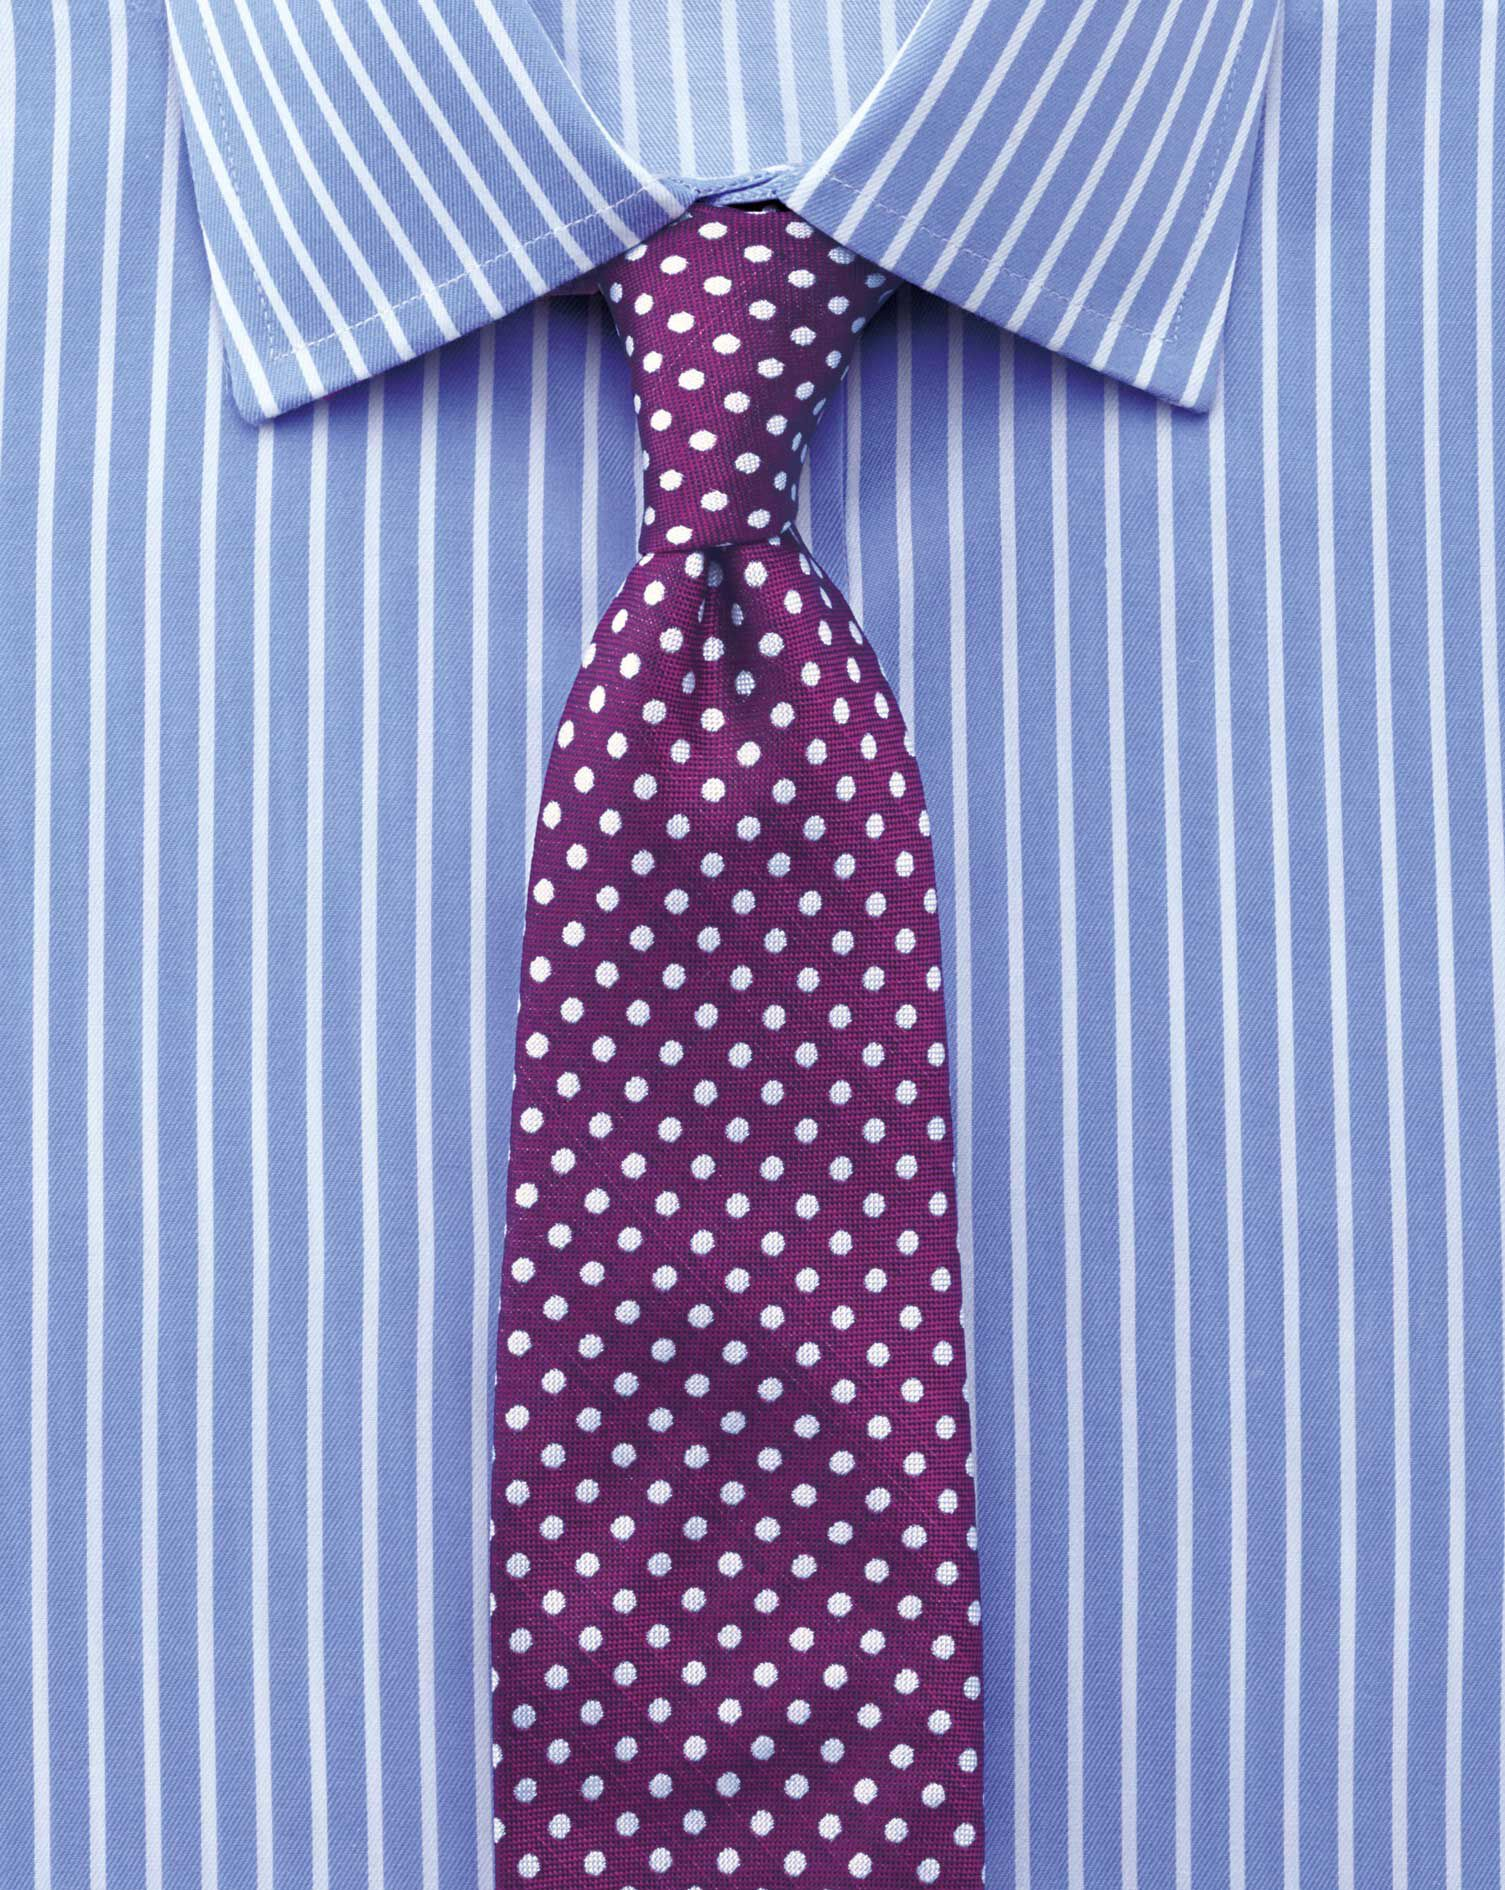 Extra Slim Fit Non-Iron Twill Stripe Sky Cotton Formal Shirt Double Cuff Size 16.5/34 by Charles Tyr